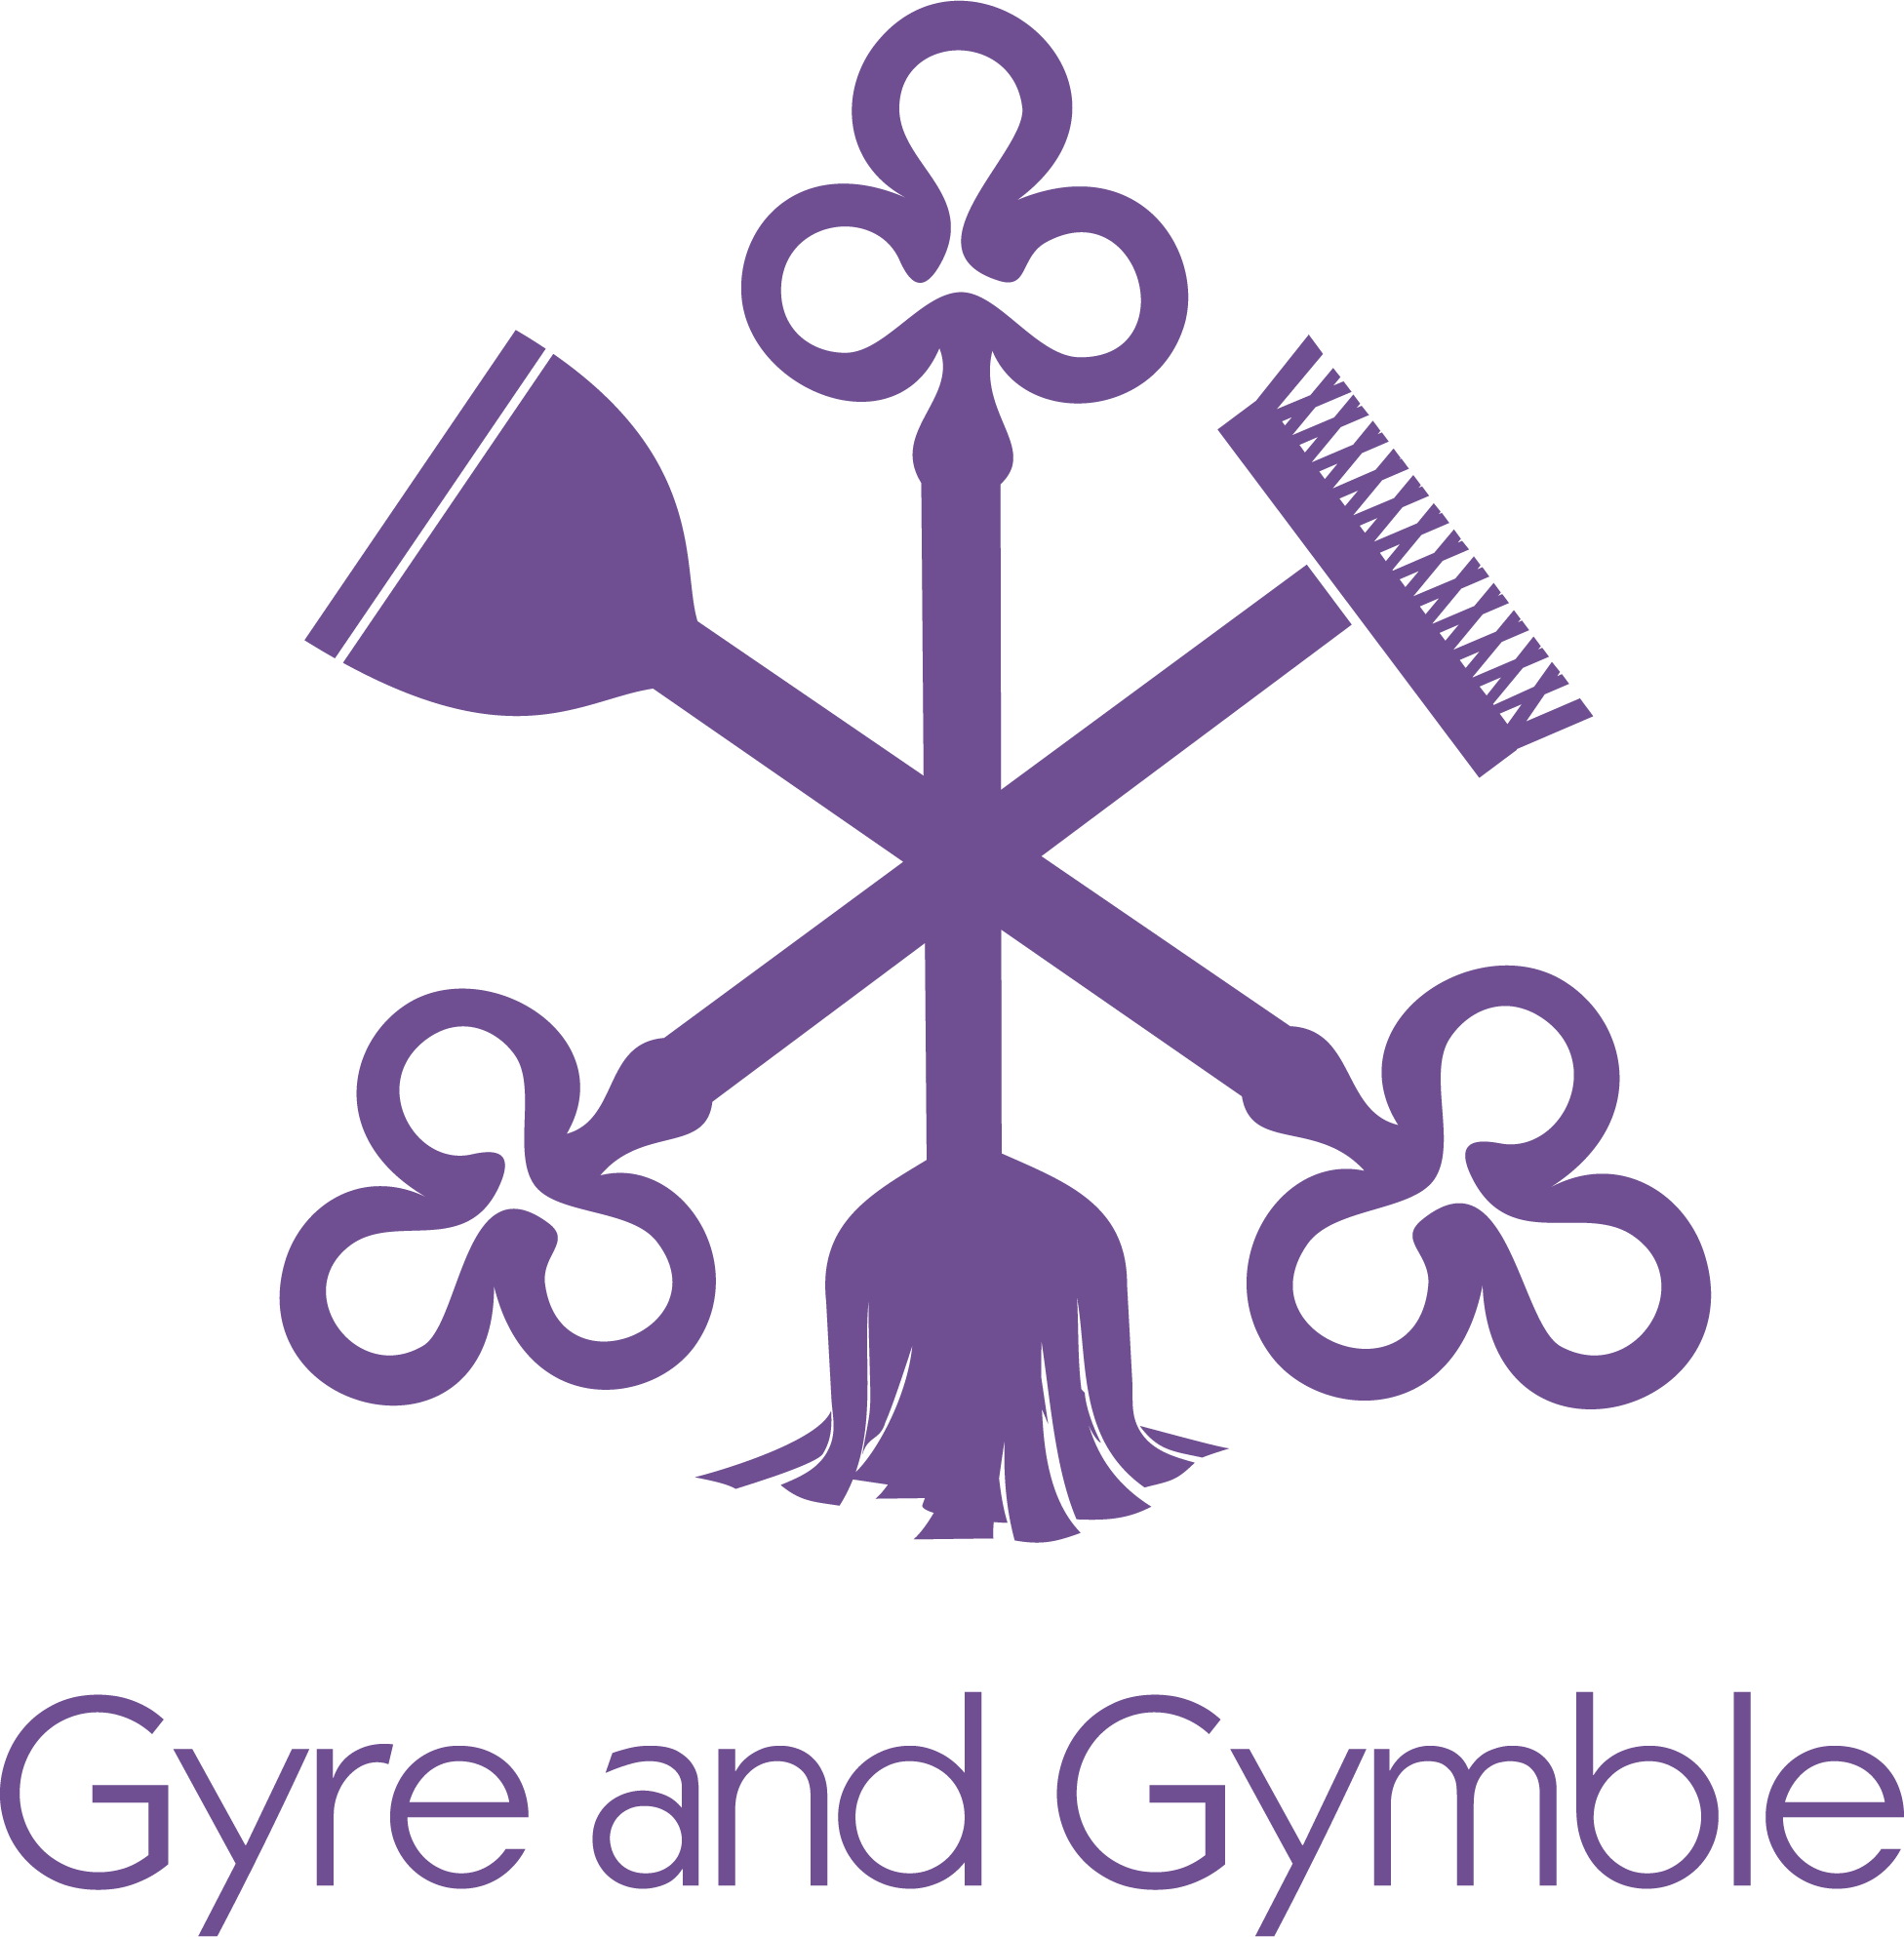 Gyre_and_Gymble_Logo@2x.png